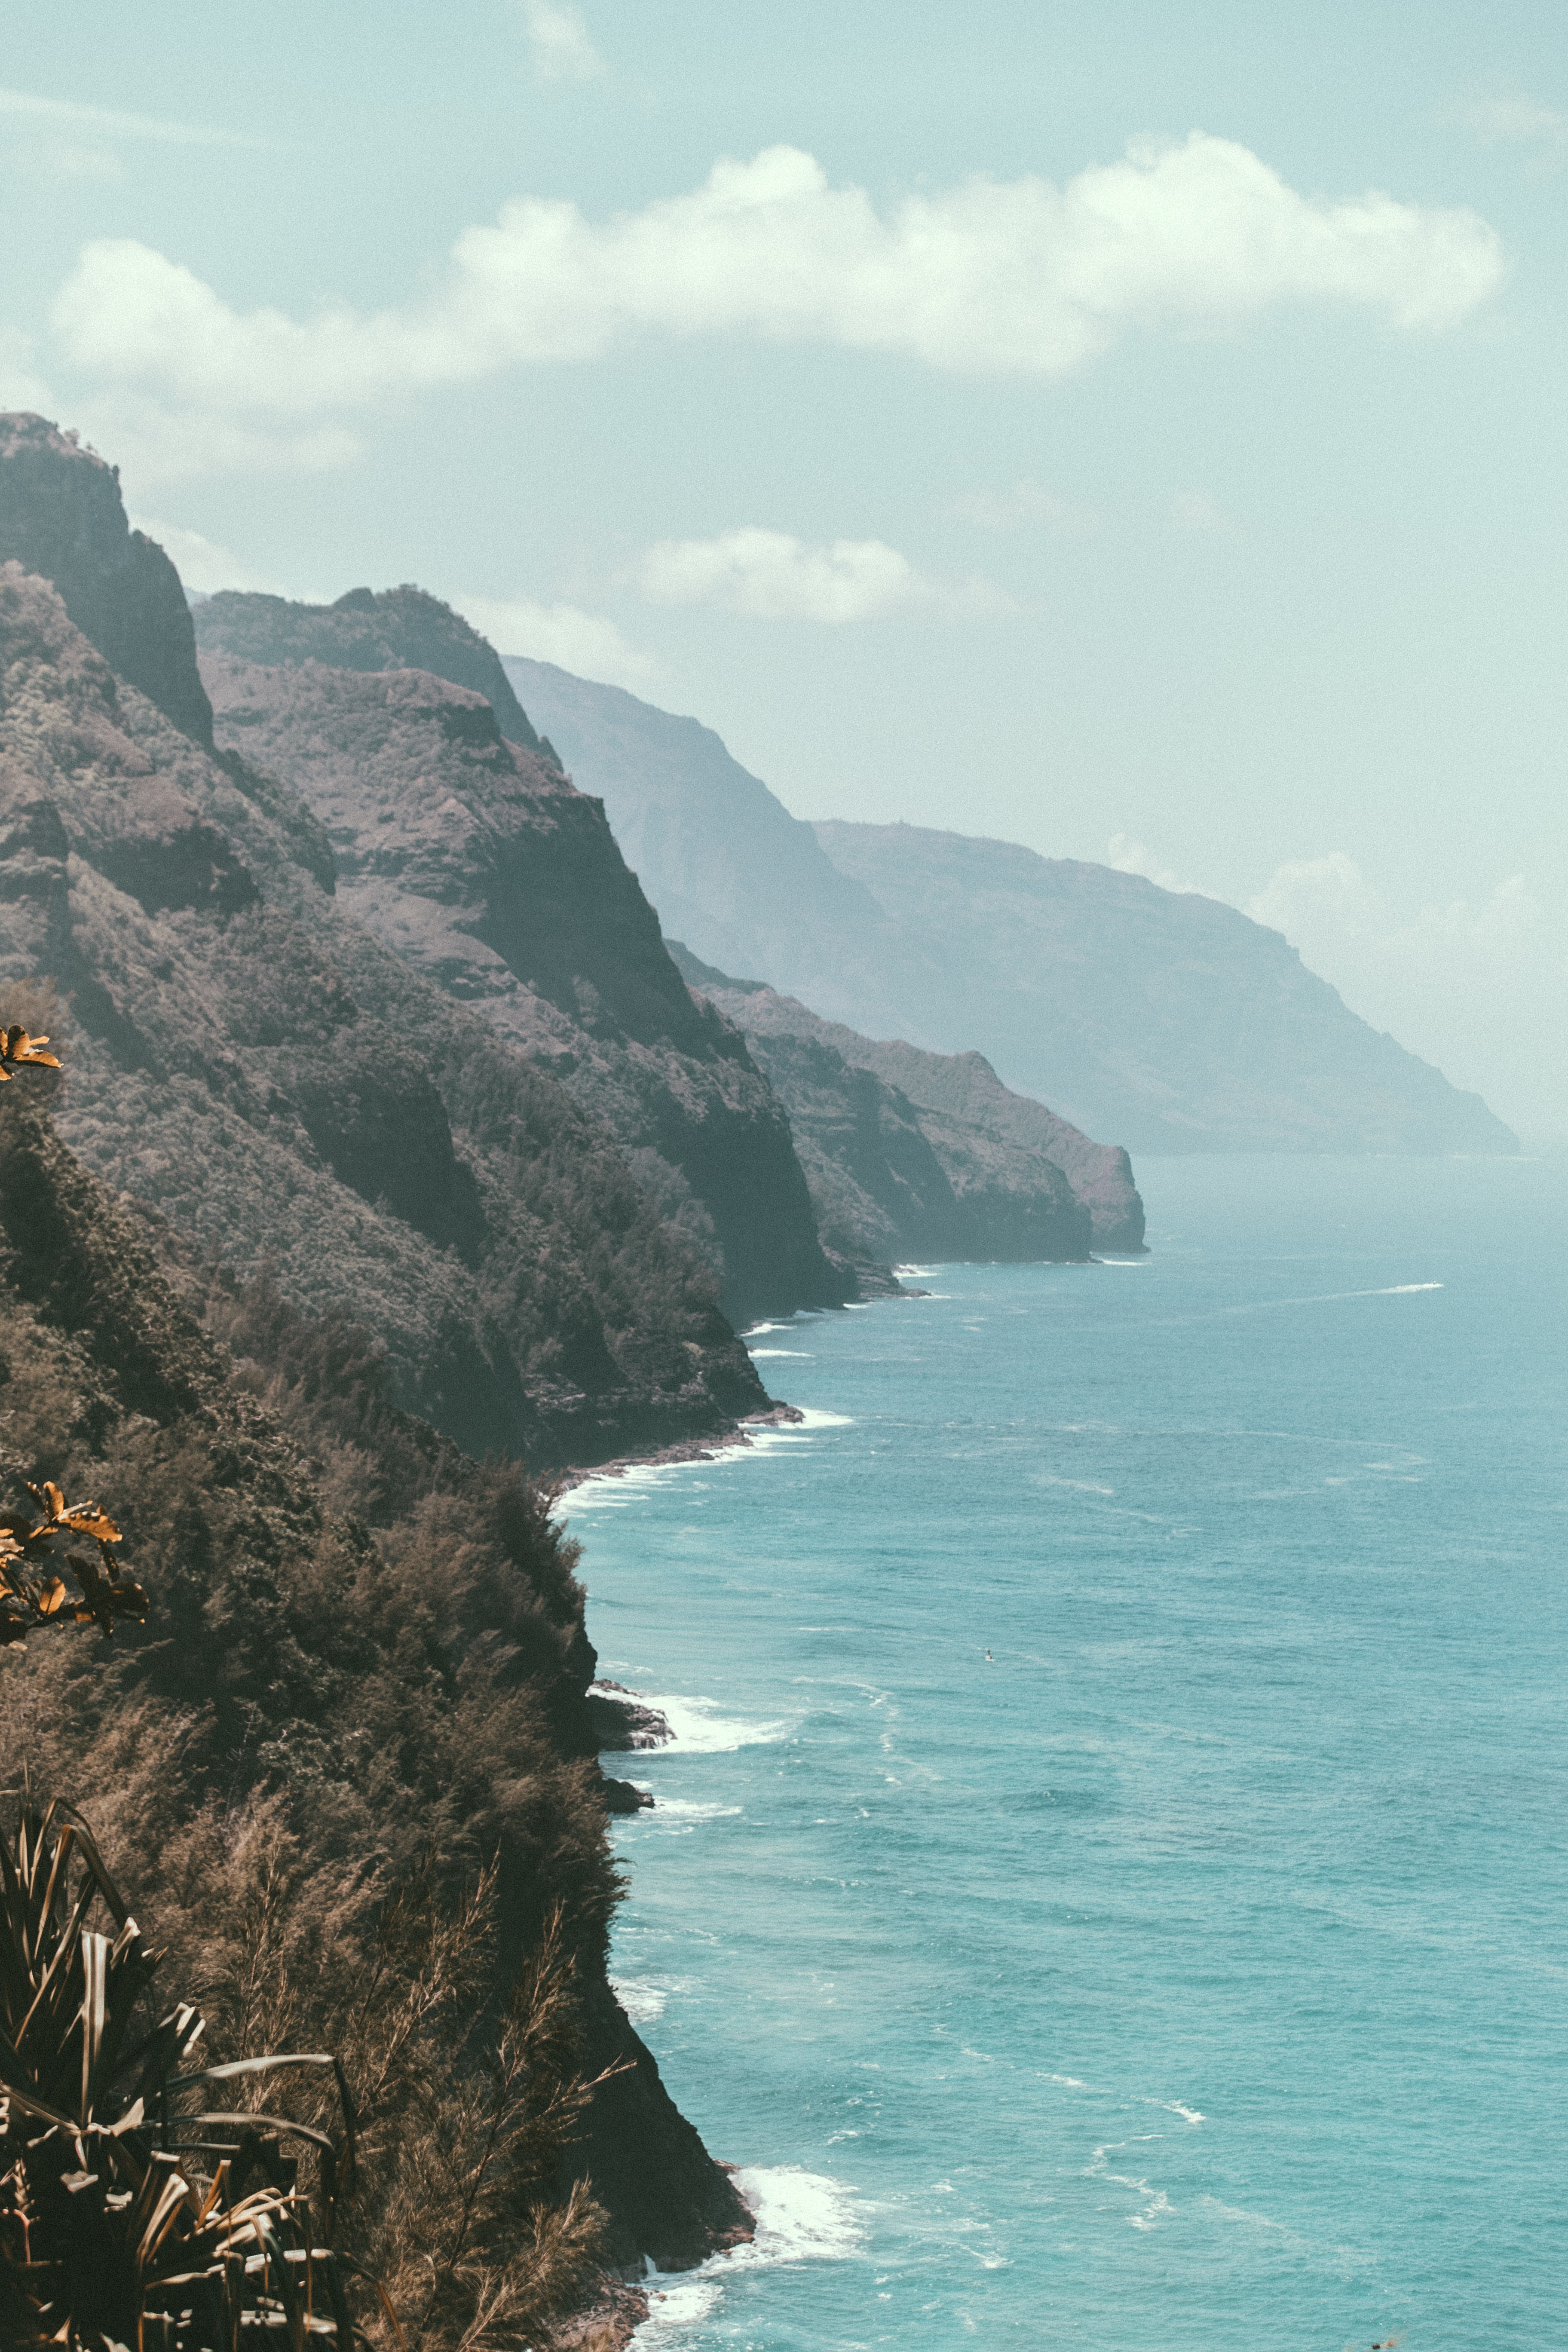 The side of a rocky cliff along a bright blue ocean in Kauai